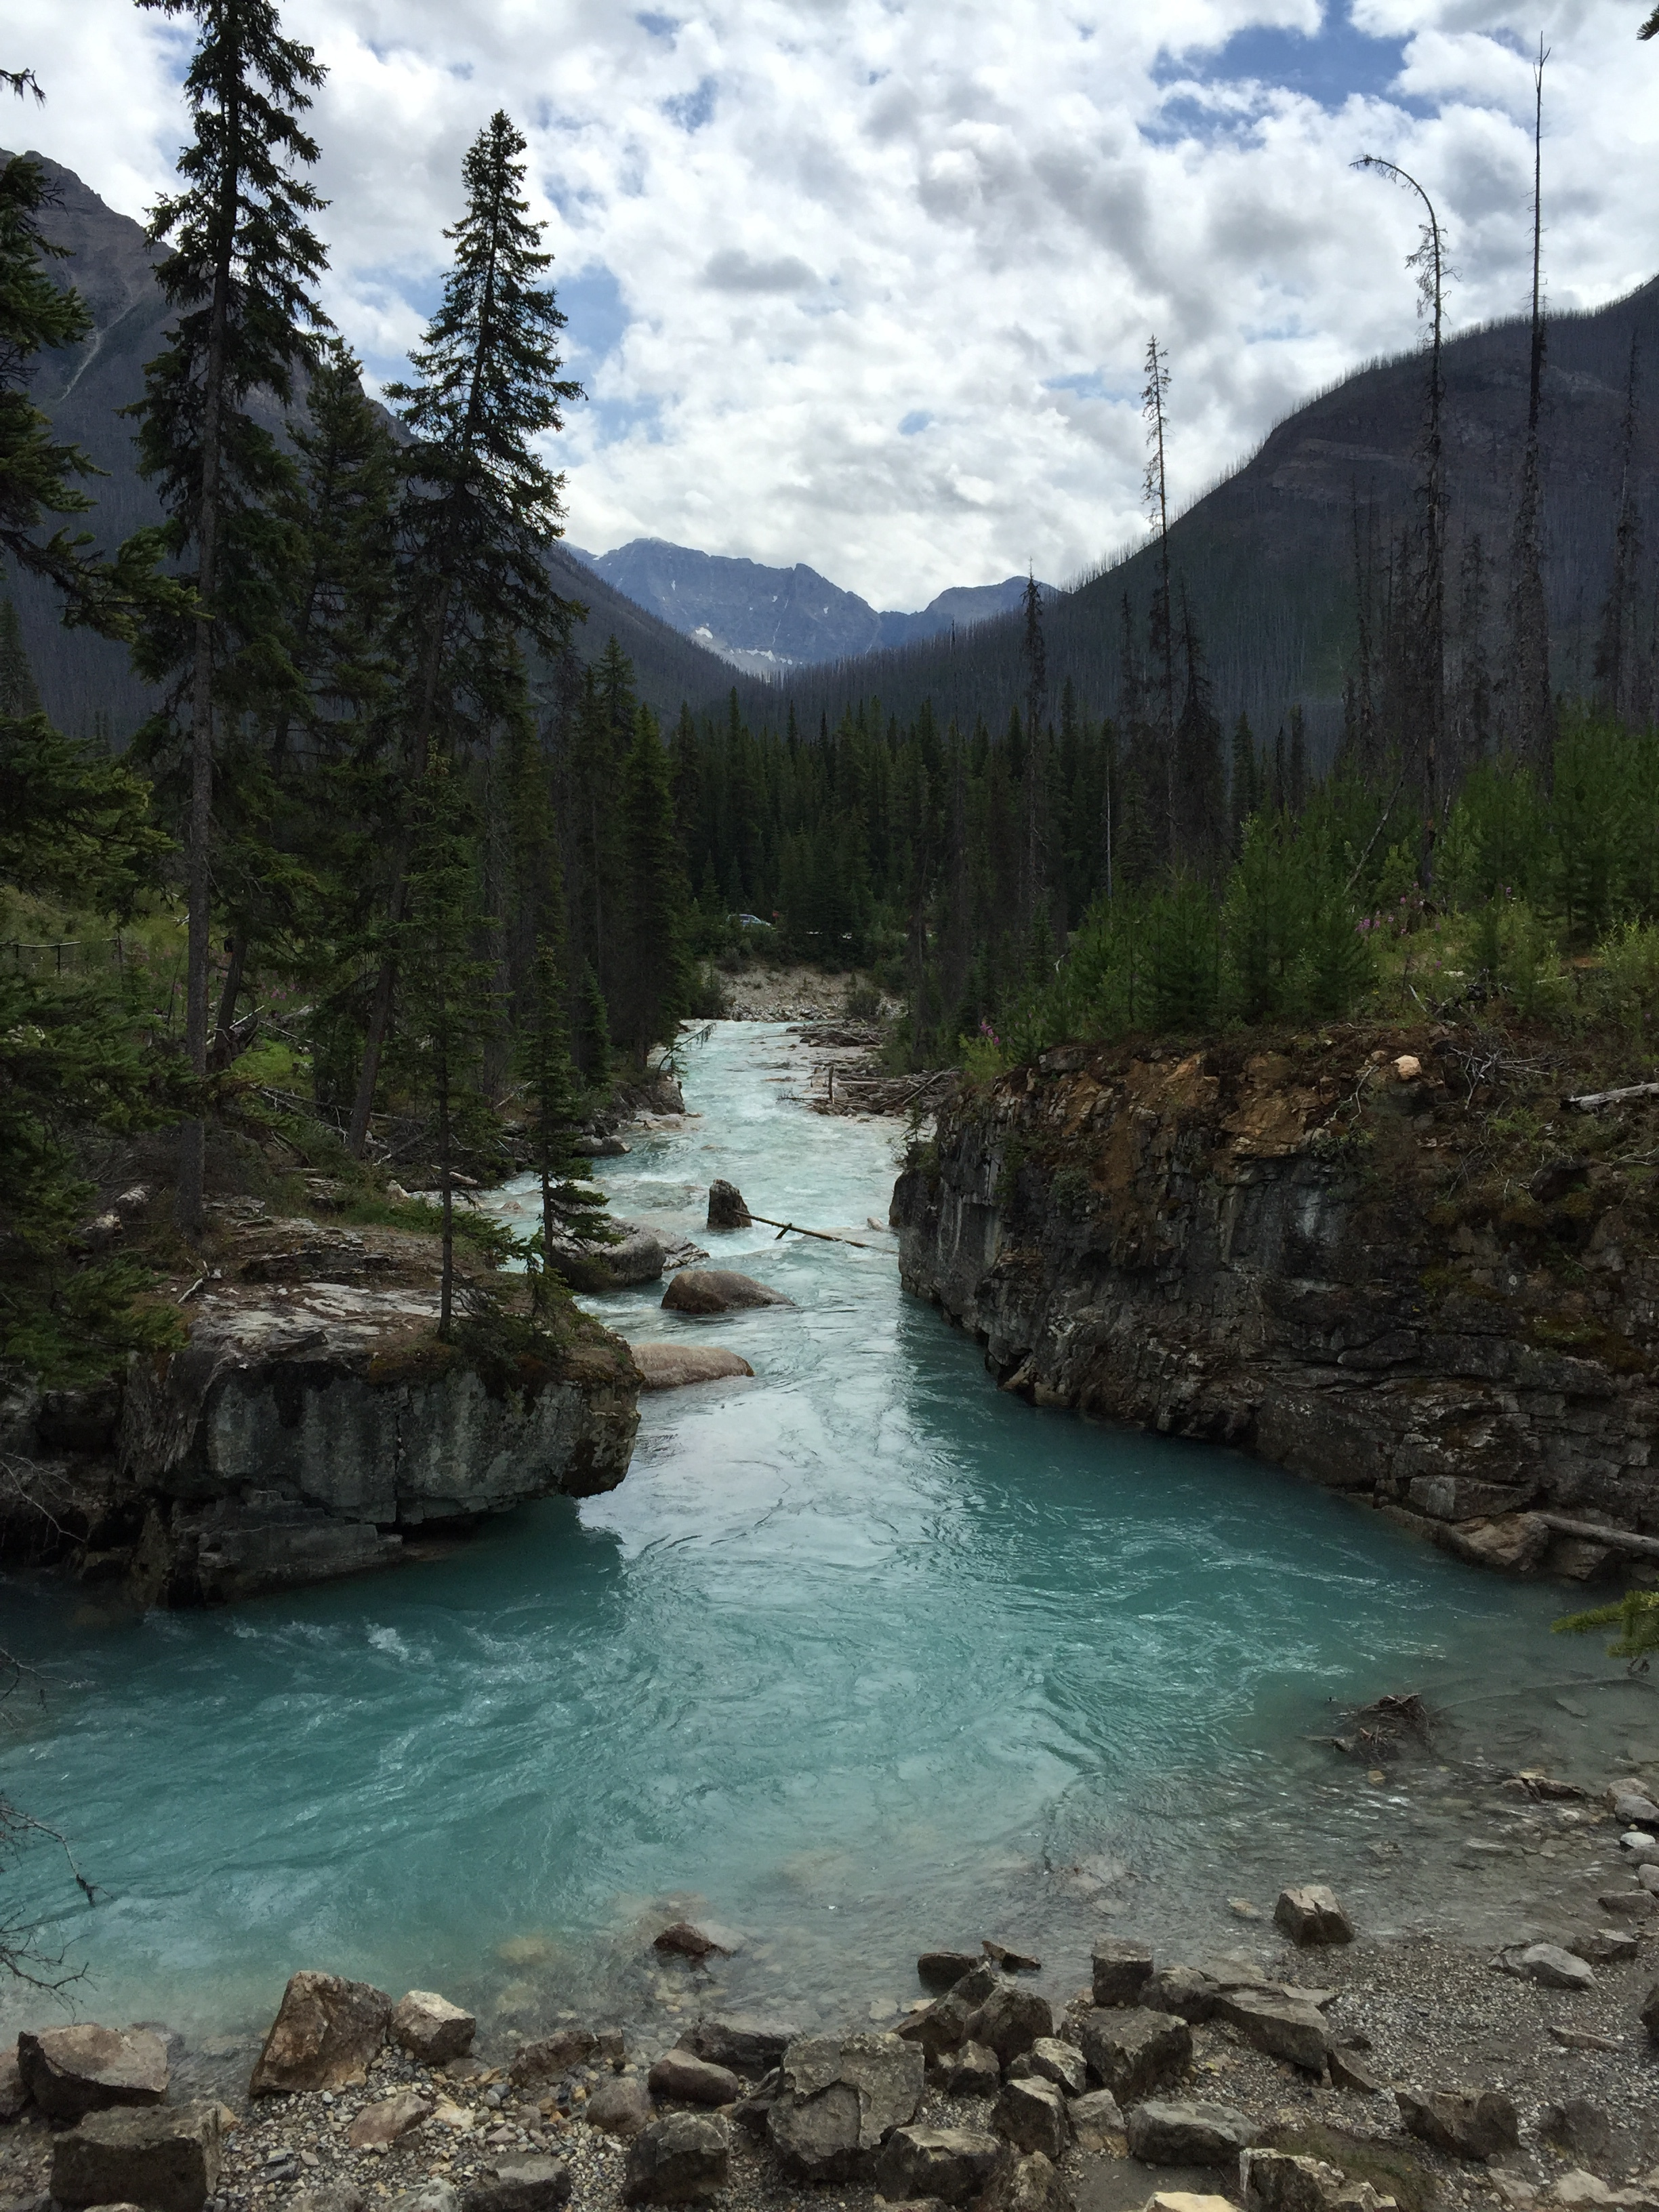 Marble Canyon, Kootenay National Park - iPhone image